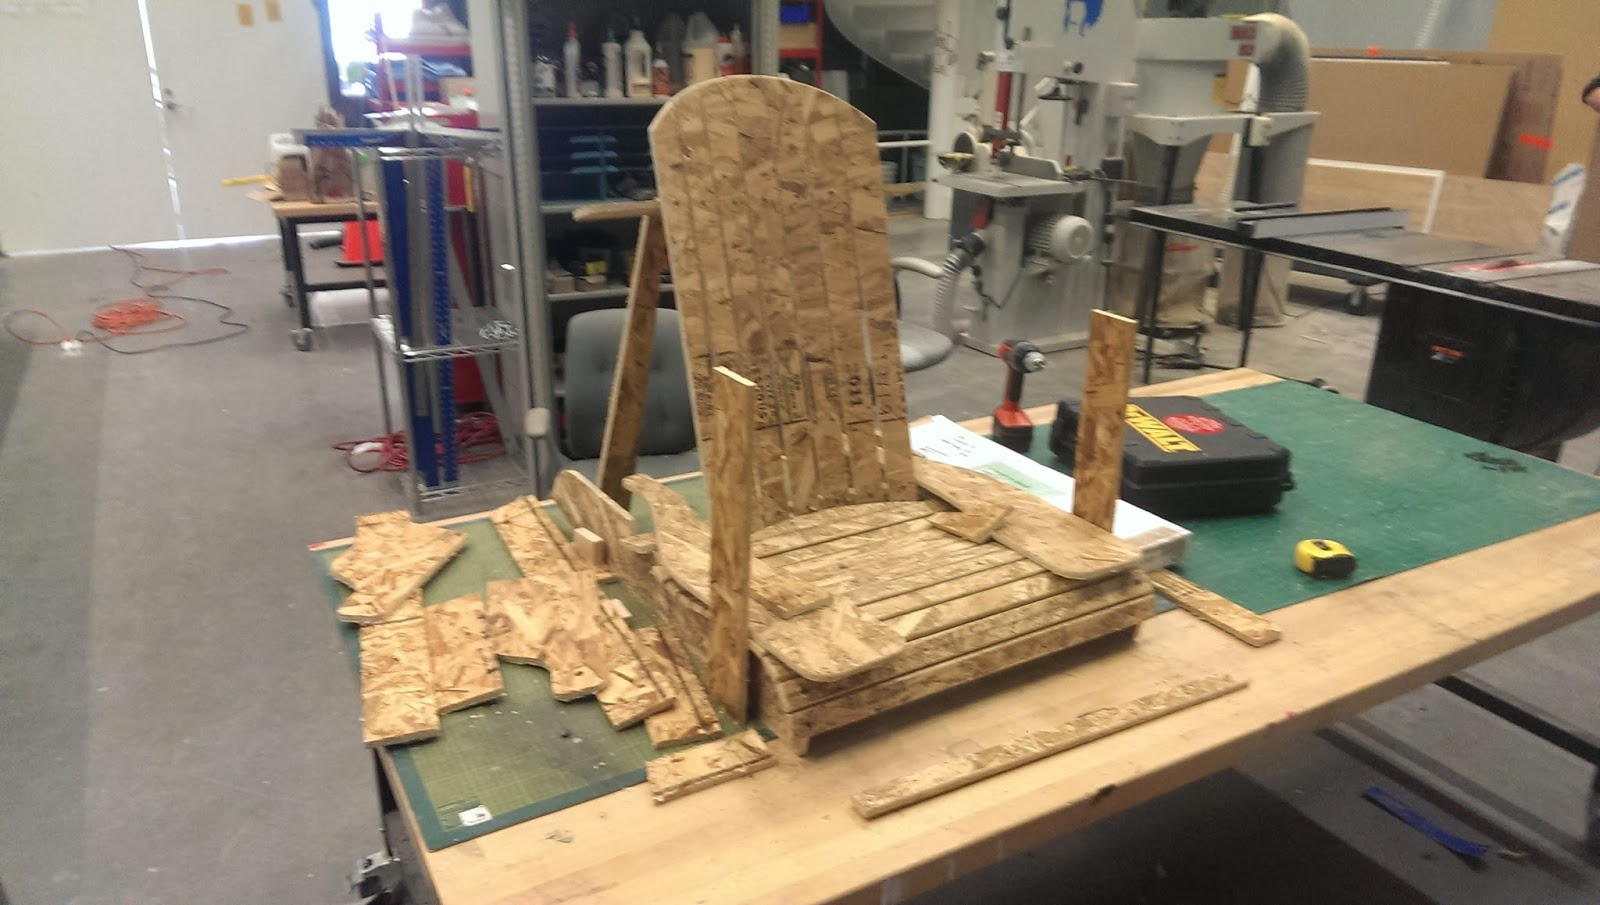 adirondack chair plans dxf pier one parsons slipcover milling mock up from osb shop bot 3